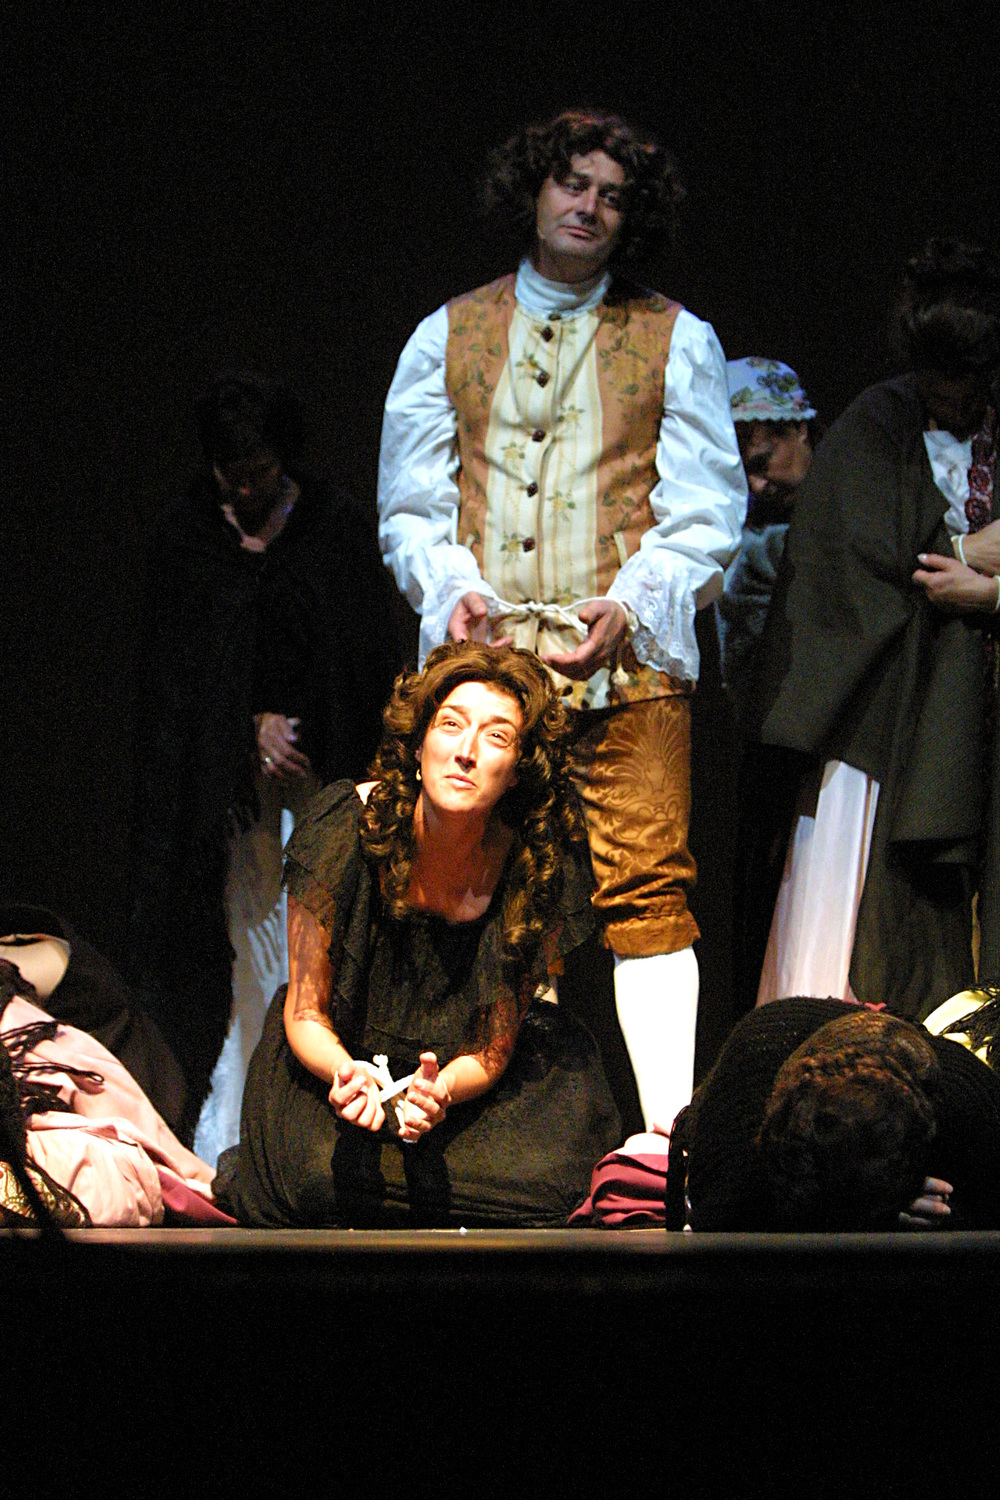 045 - The Scarlet Pimpernel 2005 - Generale.jpg